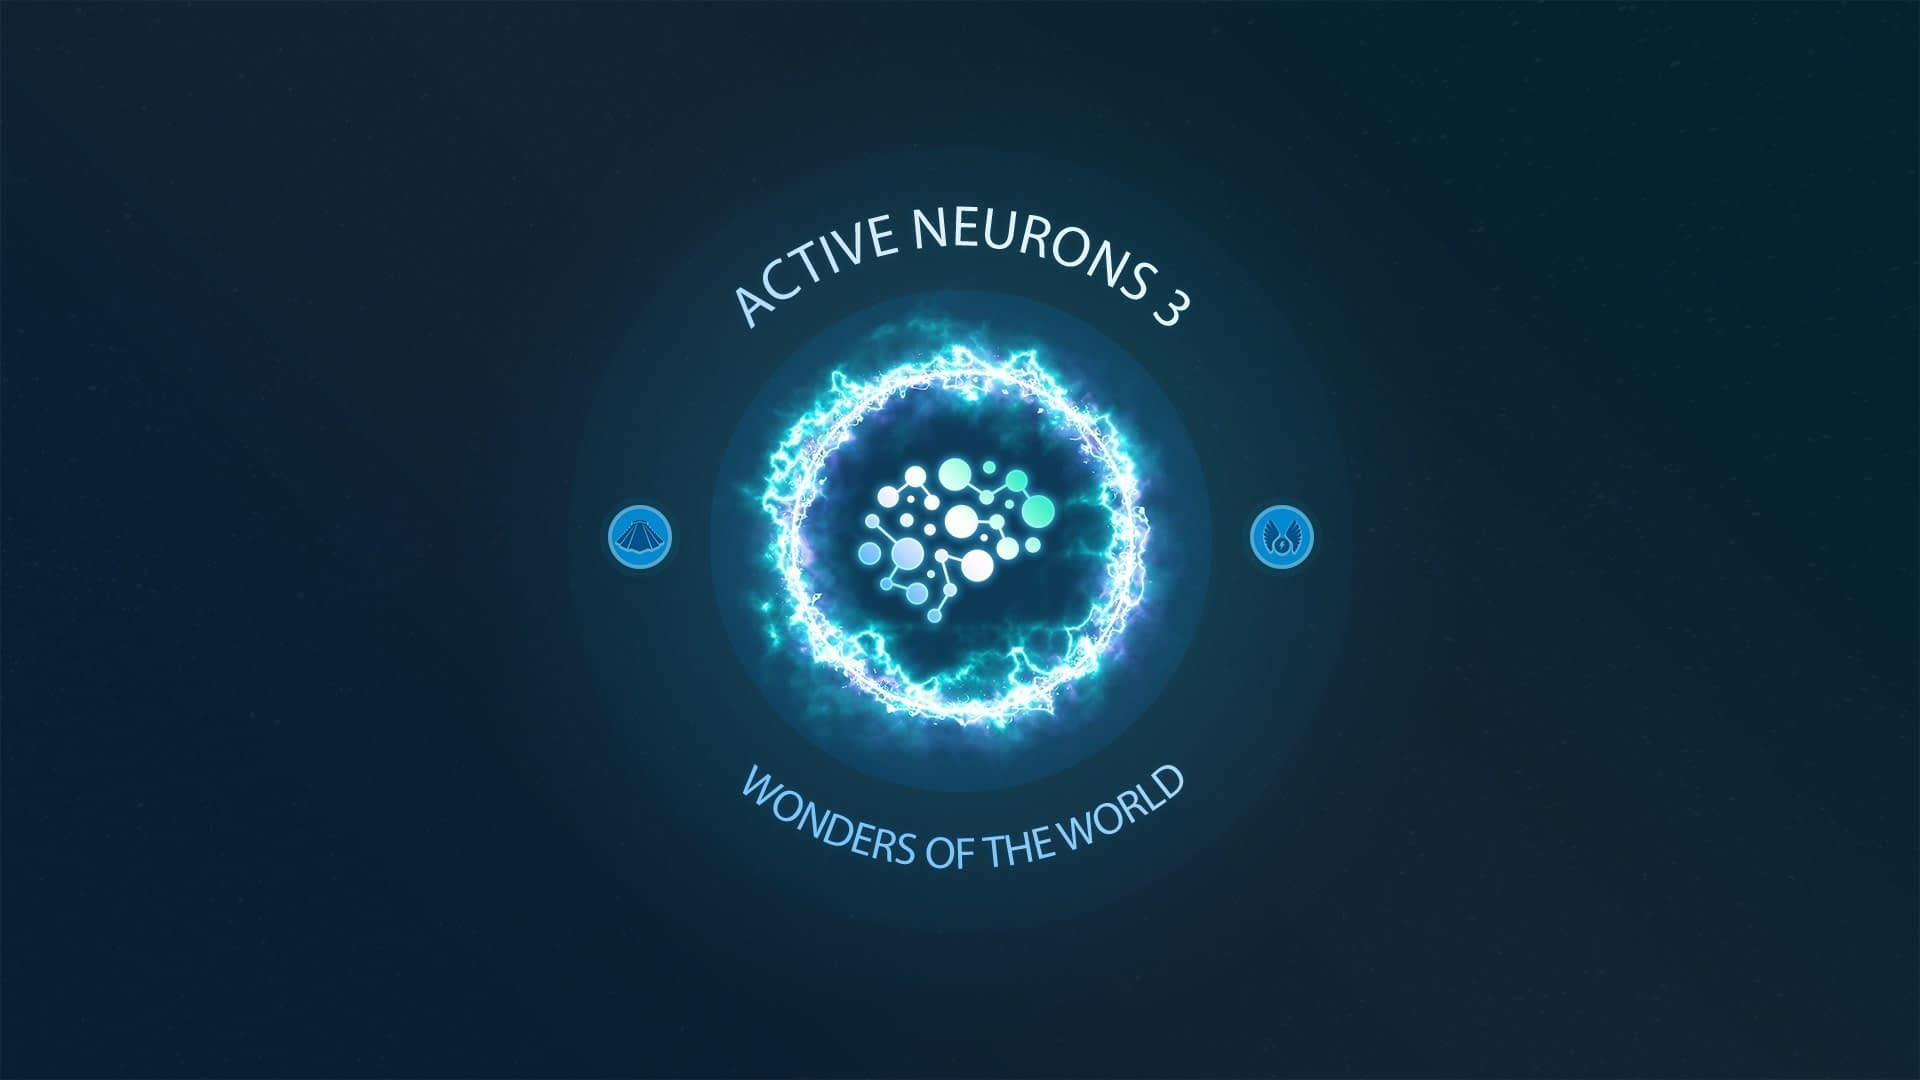 Active Neurons 3 – Wonders Of The World Is Now Available For Digital Pre-order And Pre-download On Xbox One 1